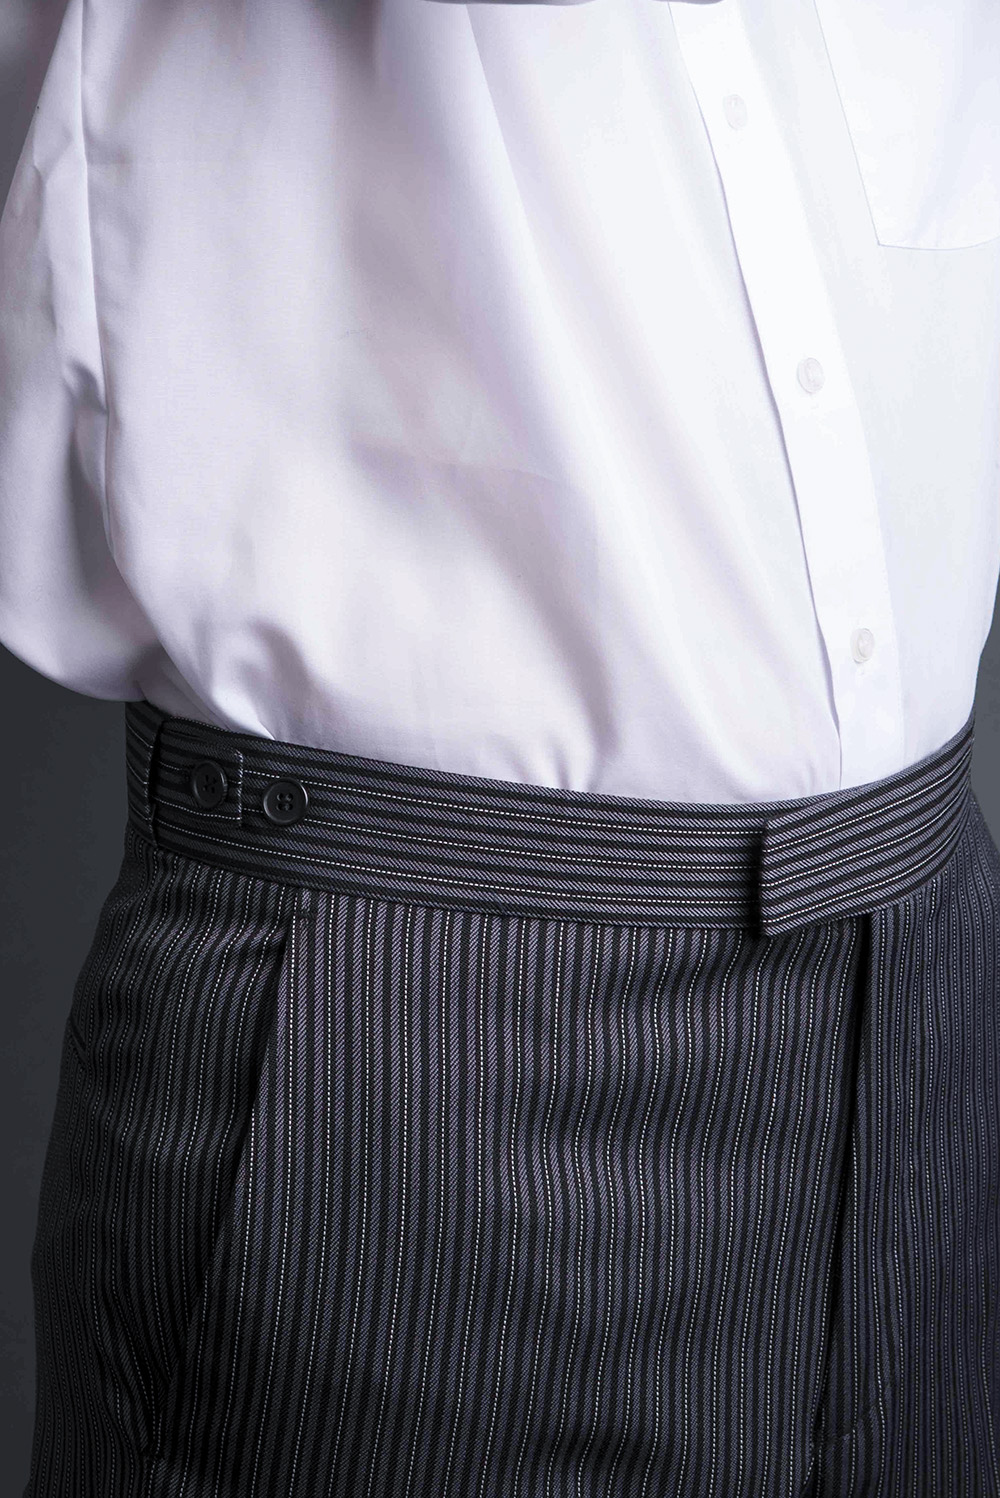 Belt detail on morning suit trousers for web.jpg